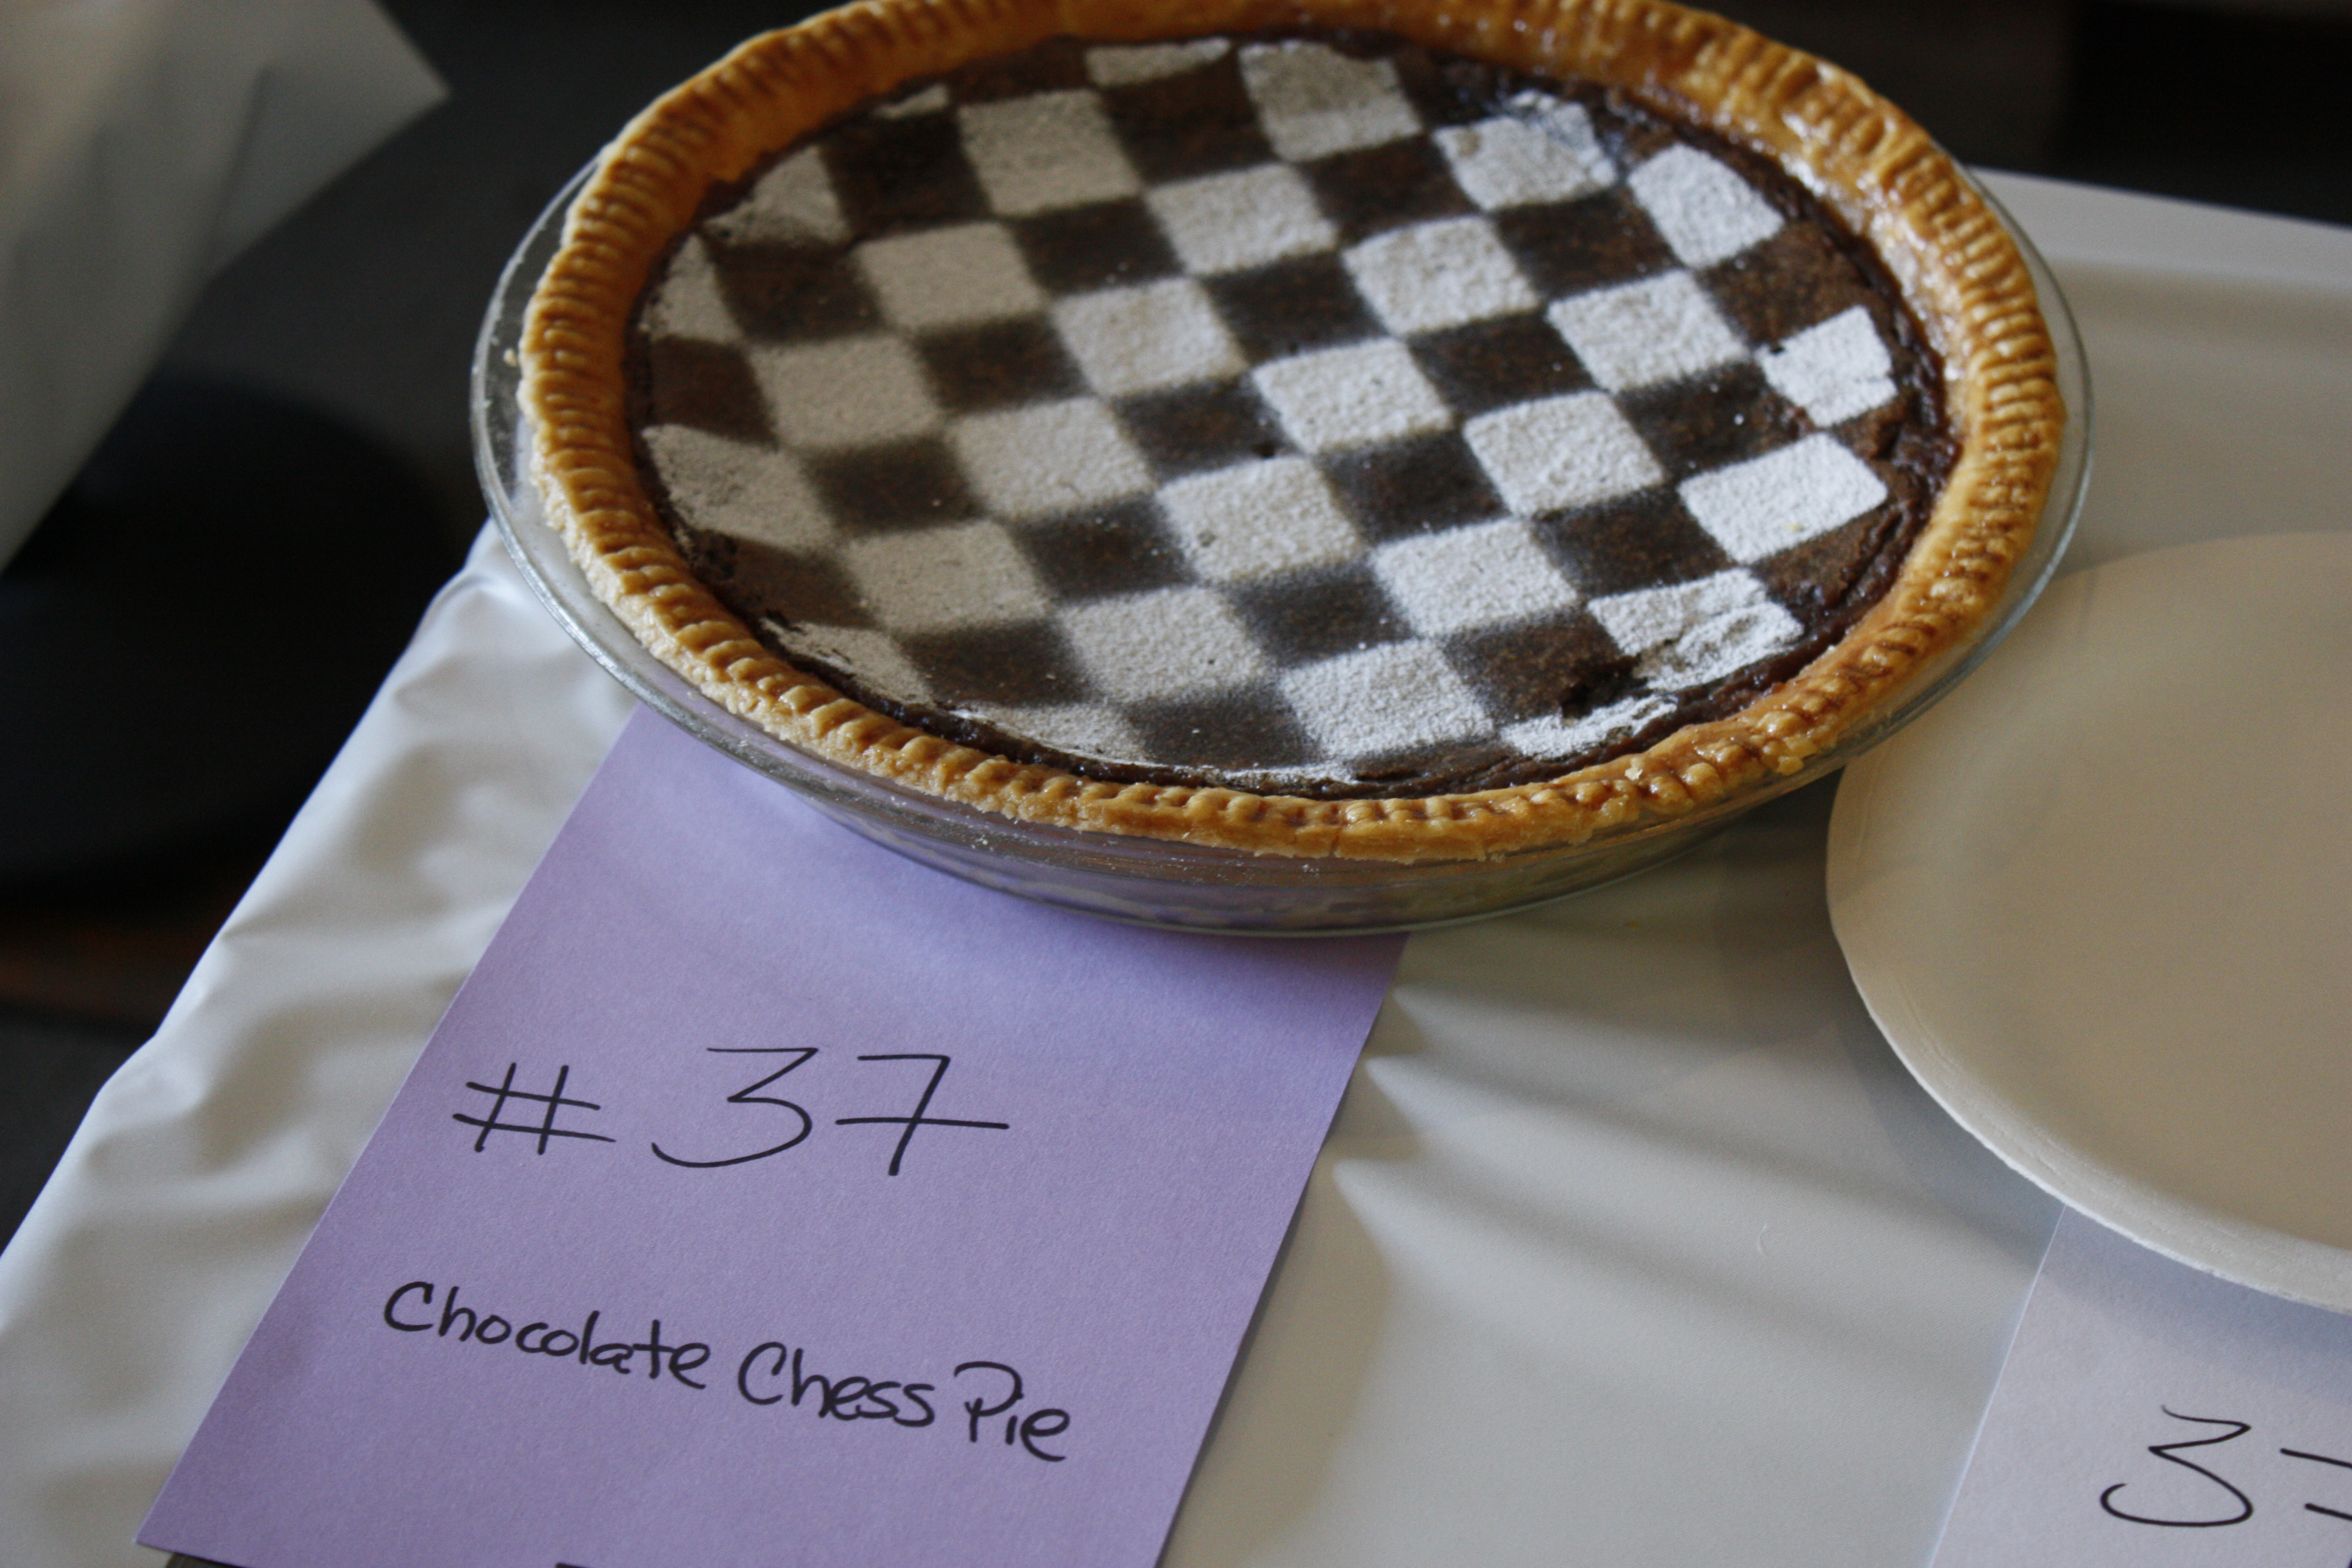 ... Gretchen Getz's Tim Burton Inspired Chocolate Chess Pie | Good Food